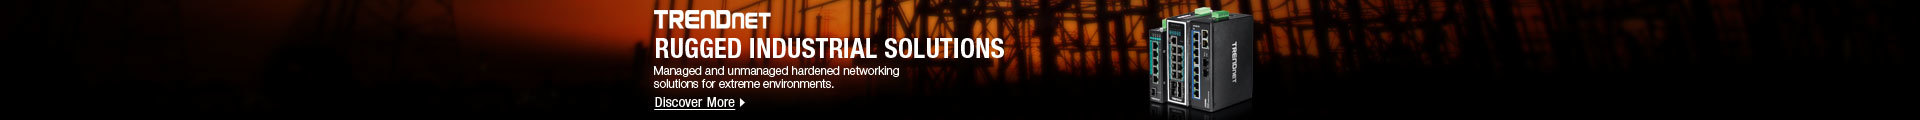 RUGGED INDUSTRIAL SOLUTIONS